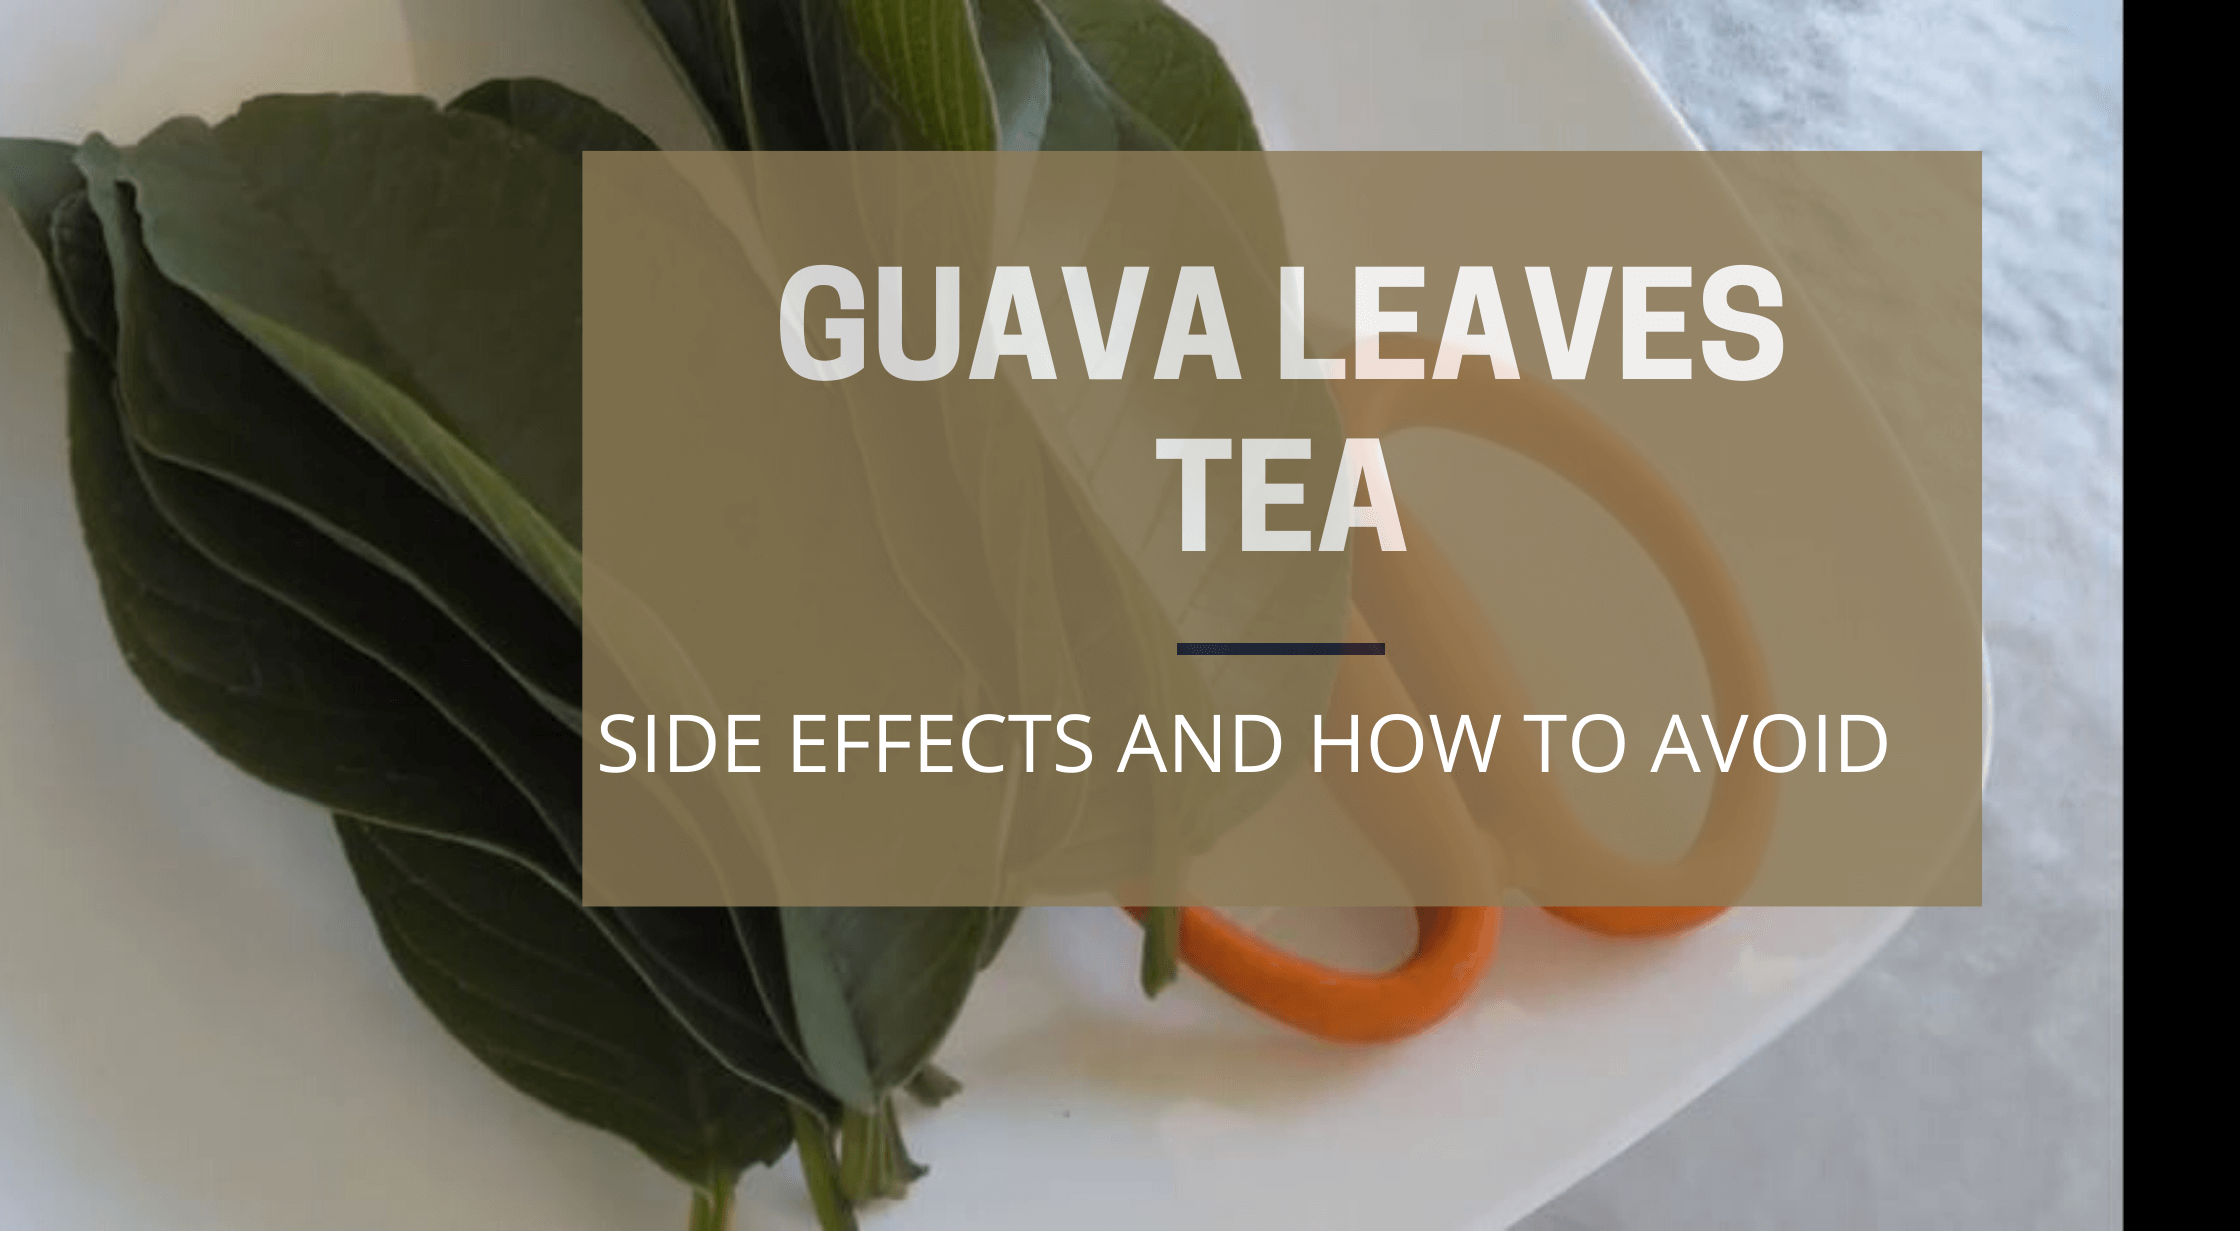 guava leaves tea side effects (1)